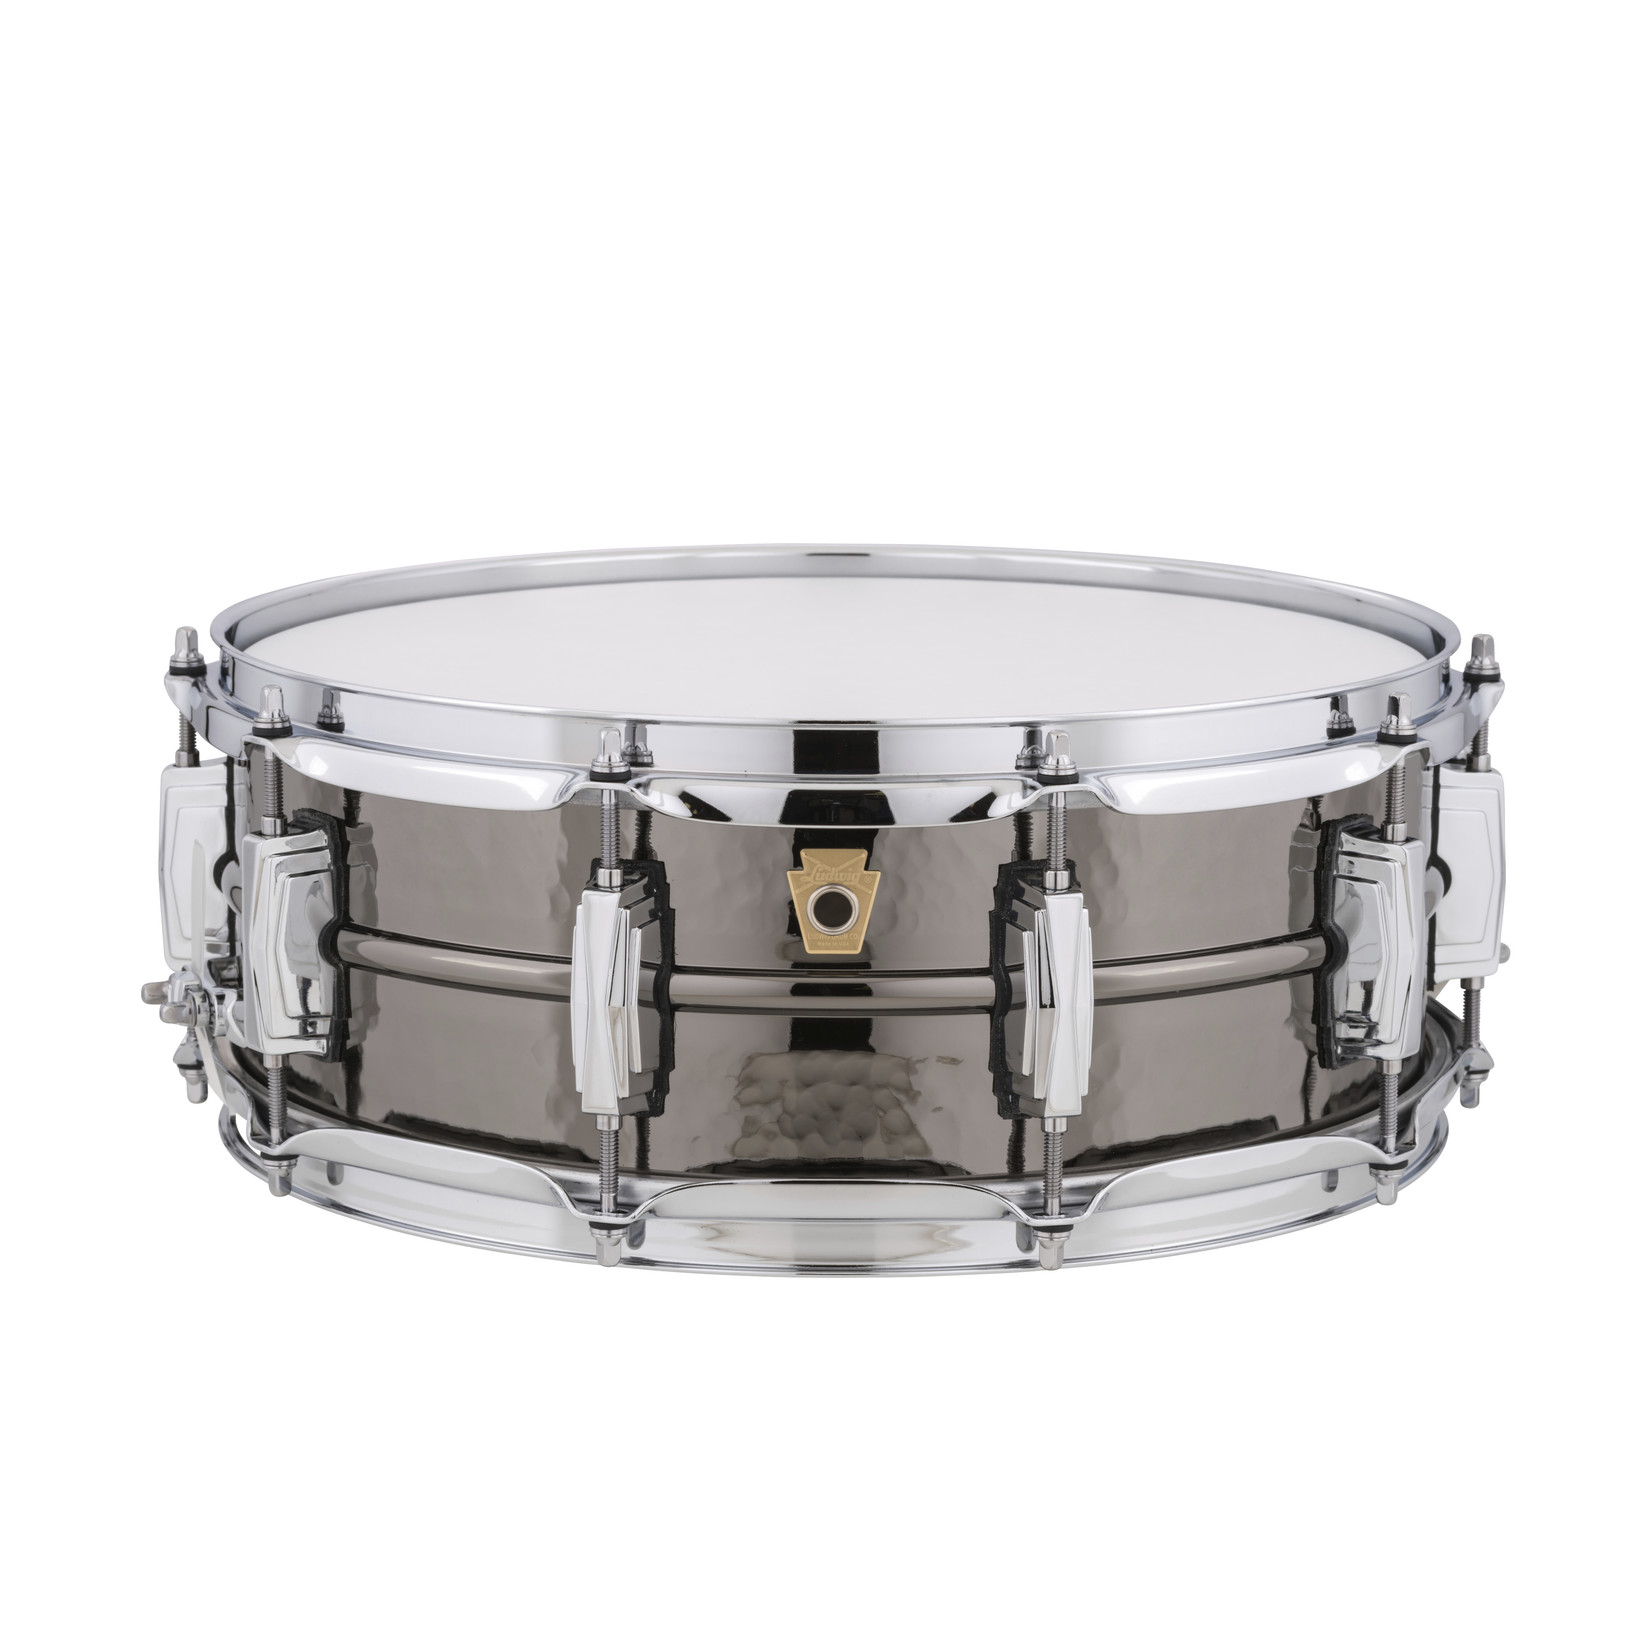 """Ludwig Ludwig 5X14 Supraphonic """"Black Beauty"""" Snare Drum / Imperial Lugs / Hammered Shell"""